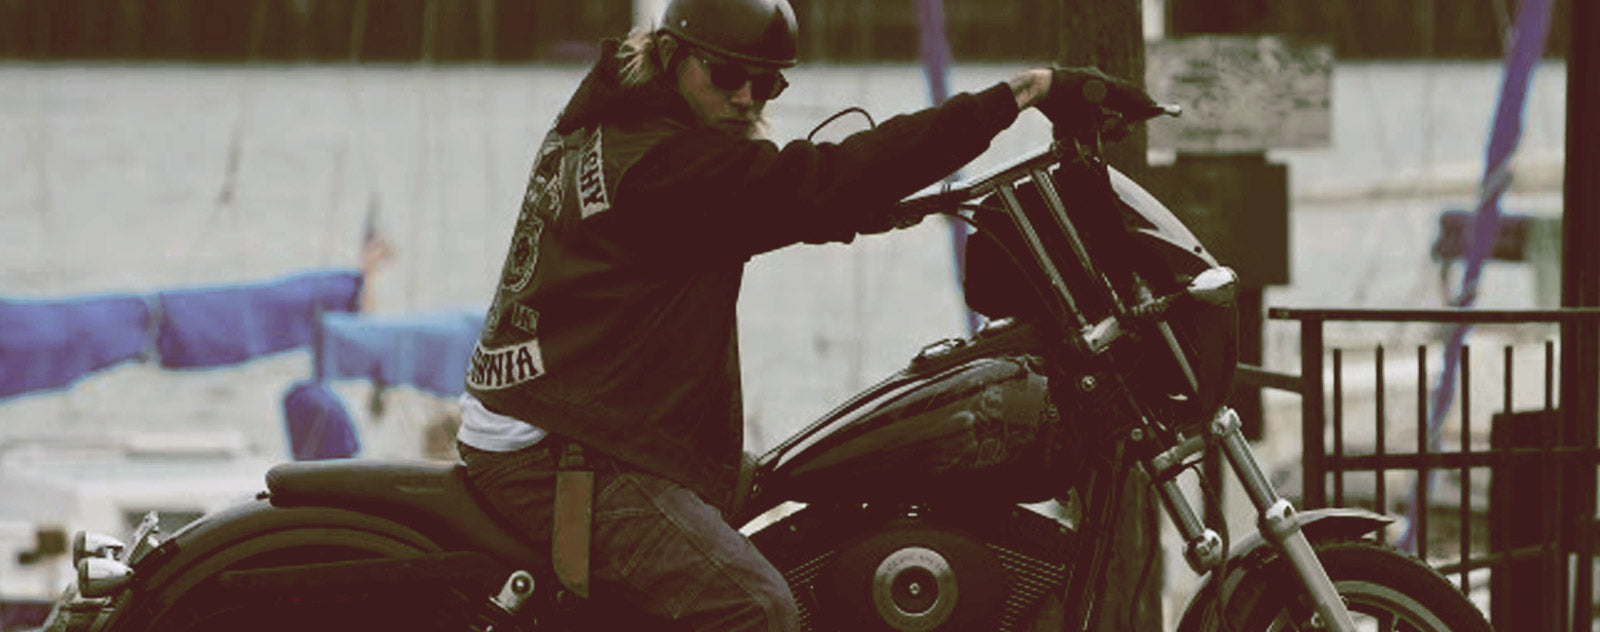 Moto Happy Sons of Anarchy